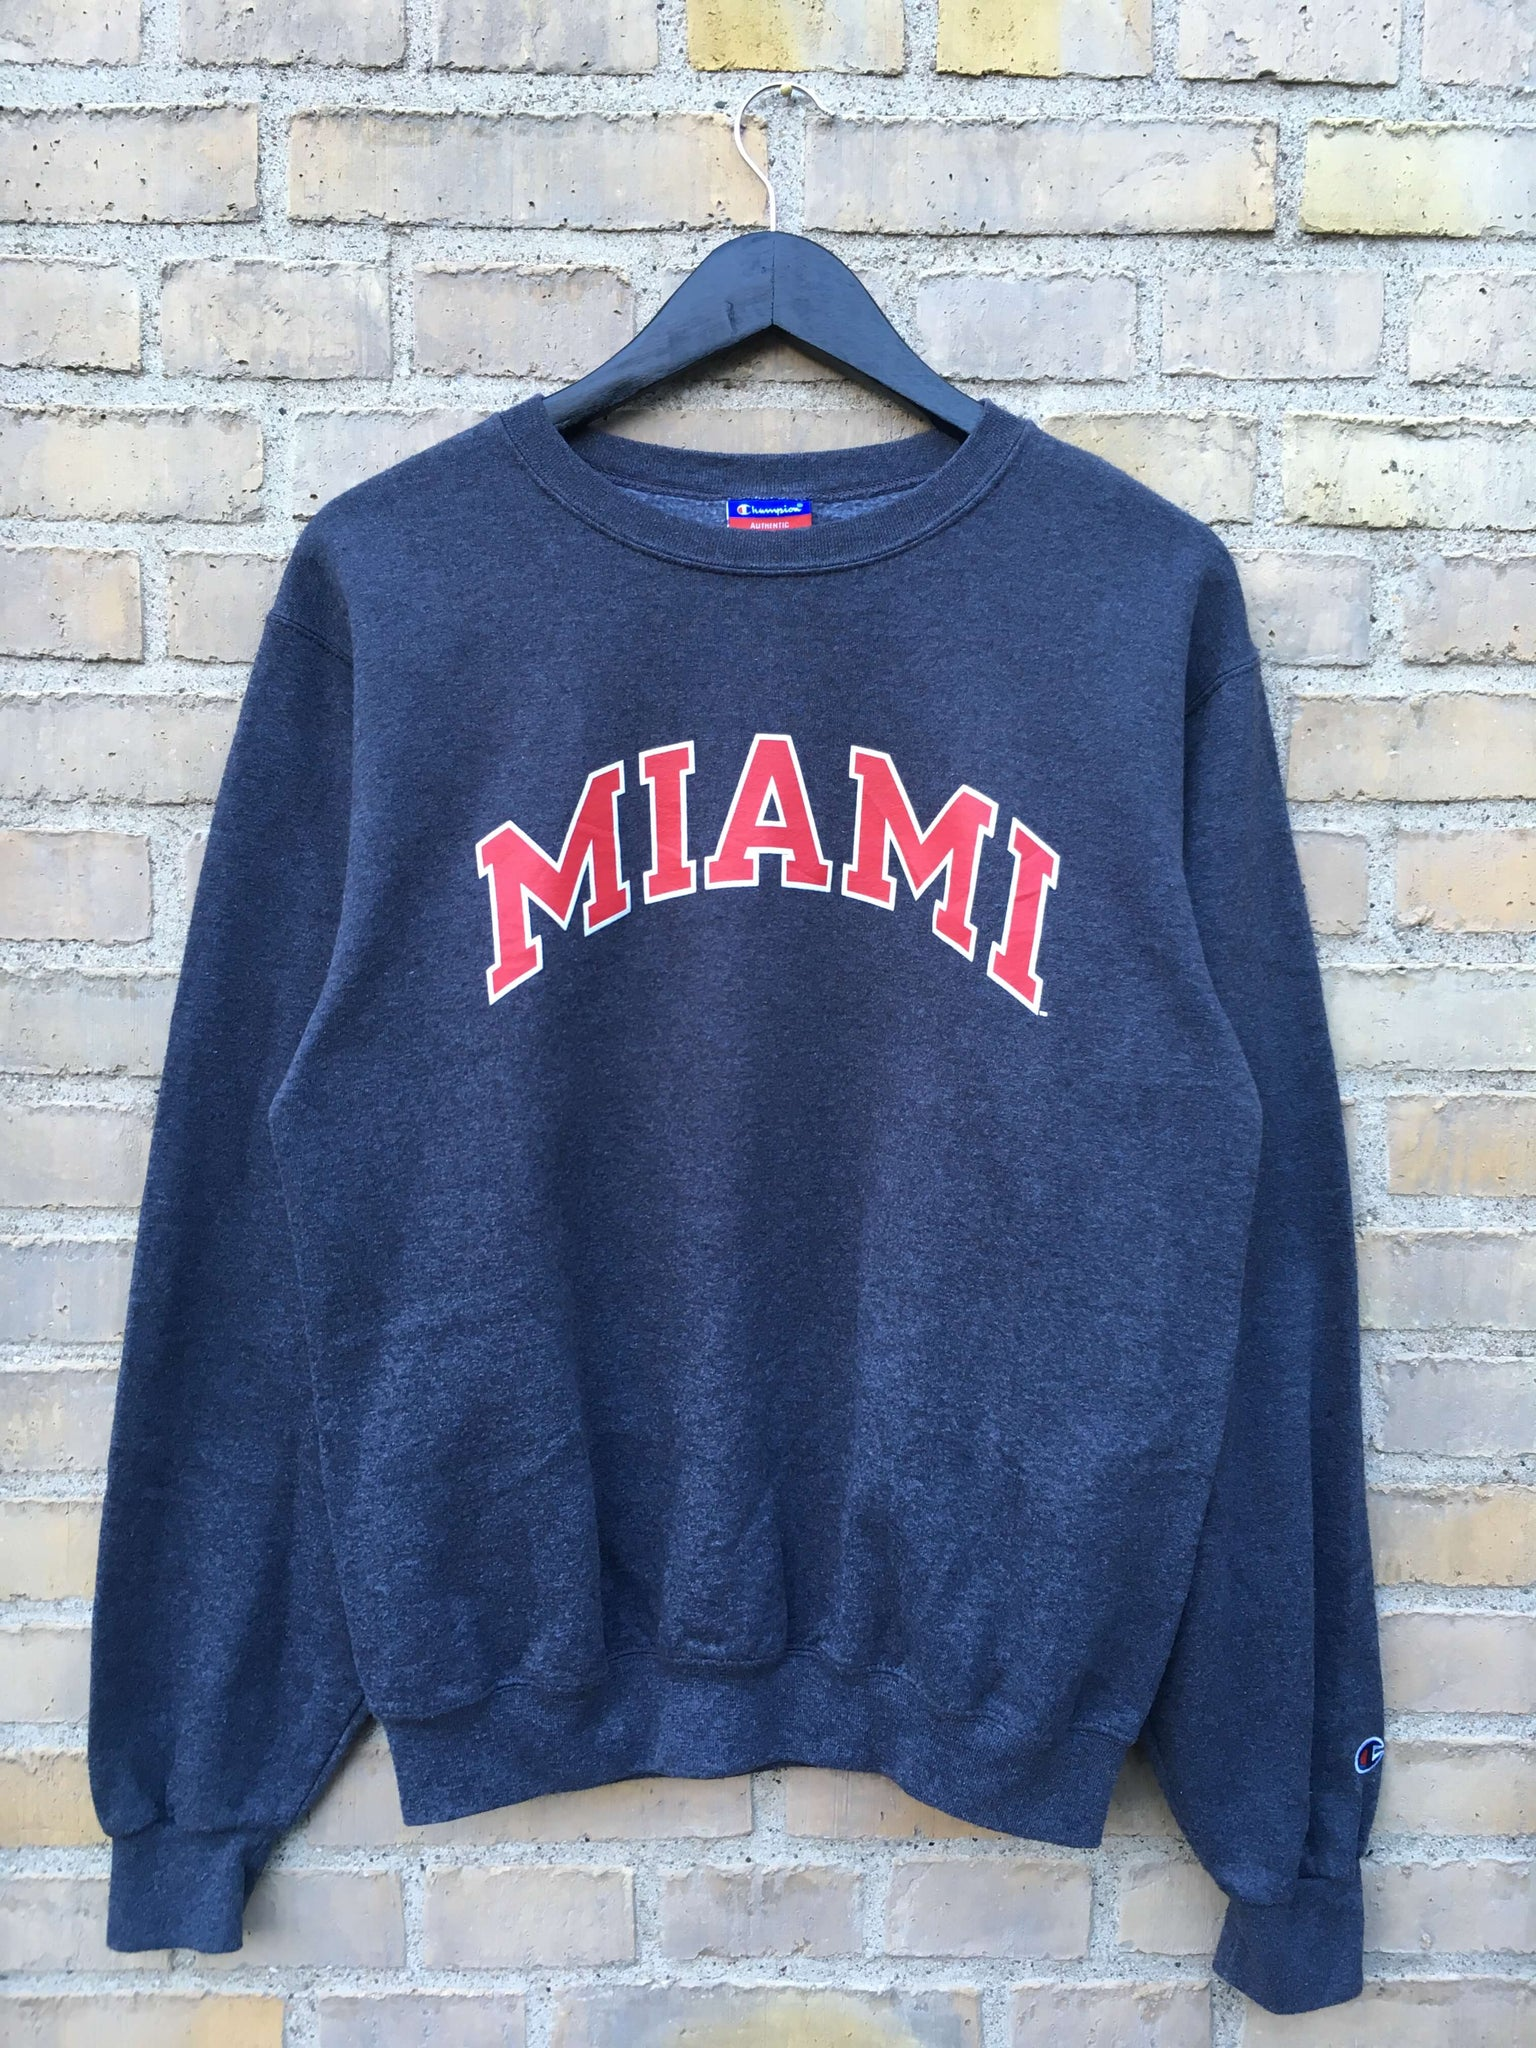 Vintage Champion Miami Sweatshirt, Small